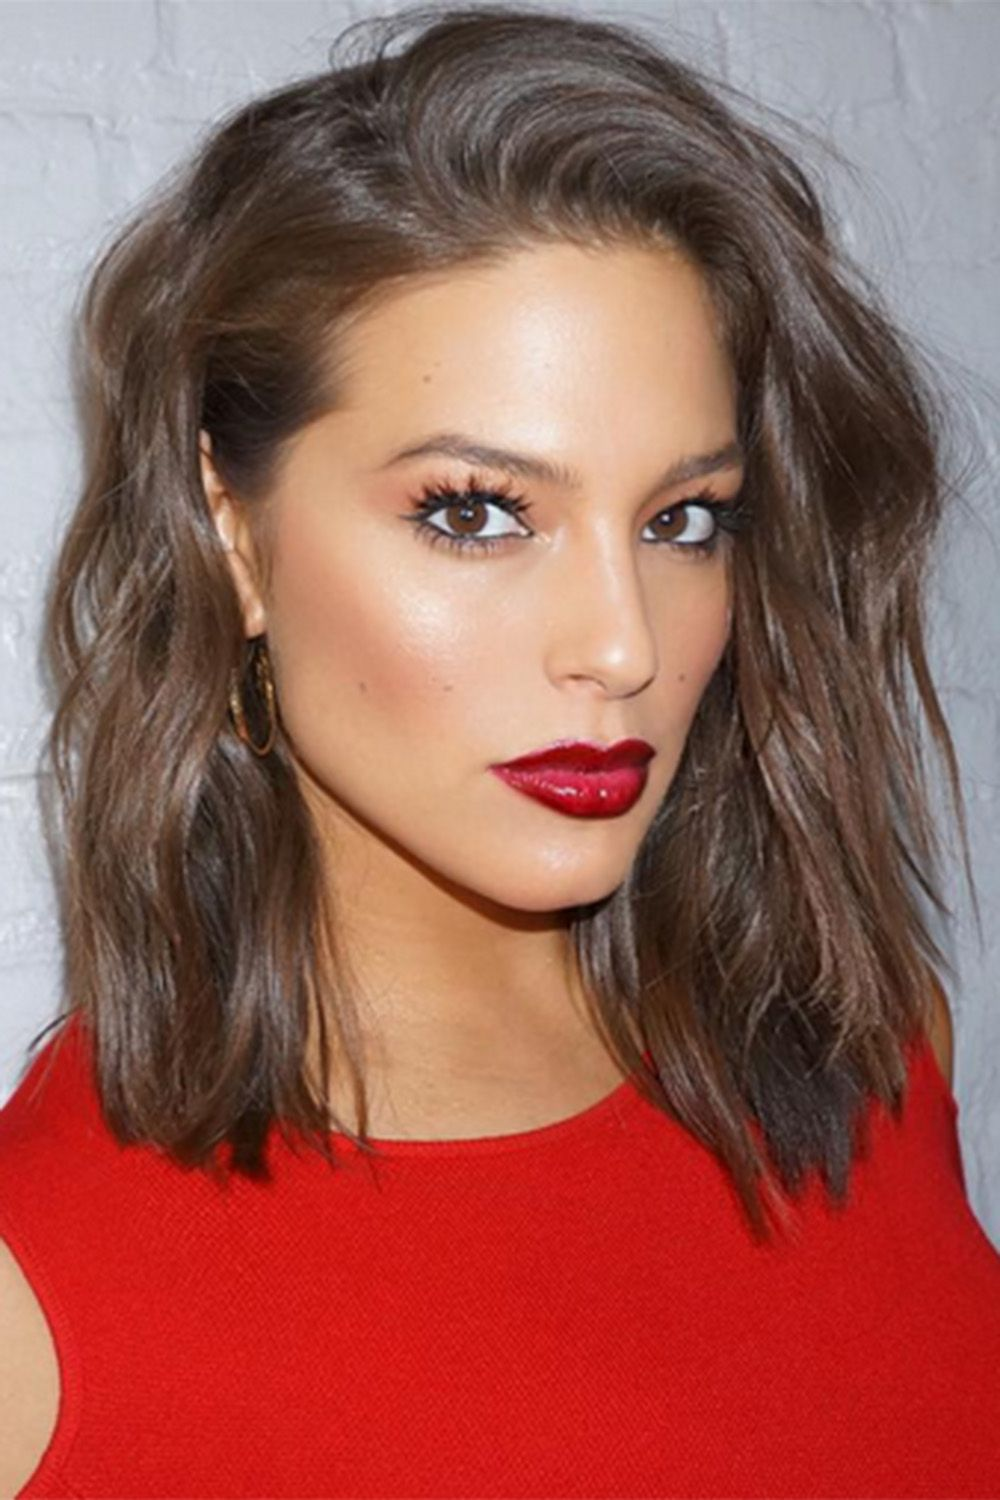 Bob Hairstyles To Give You All The Short Hair Inspo   great hair     Ashley Graham Is Transformed After Cutting Her Long Hair Into A Lob  2016